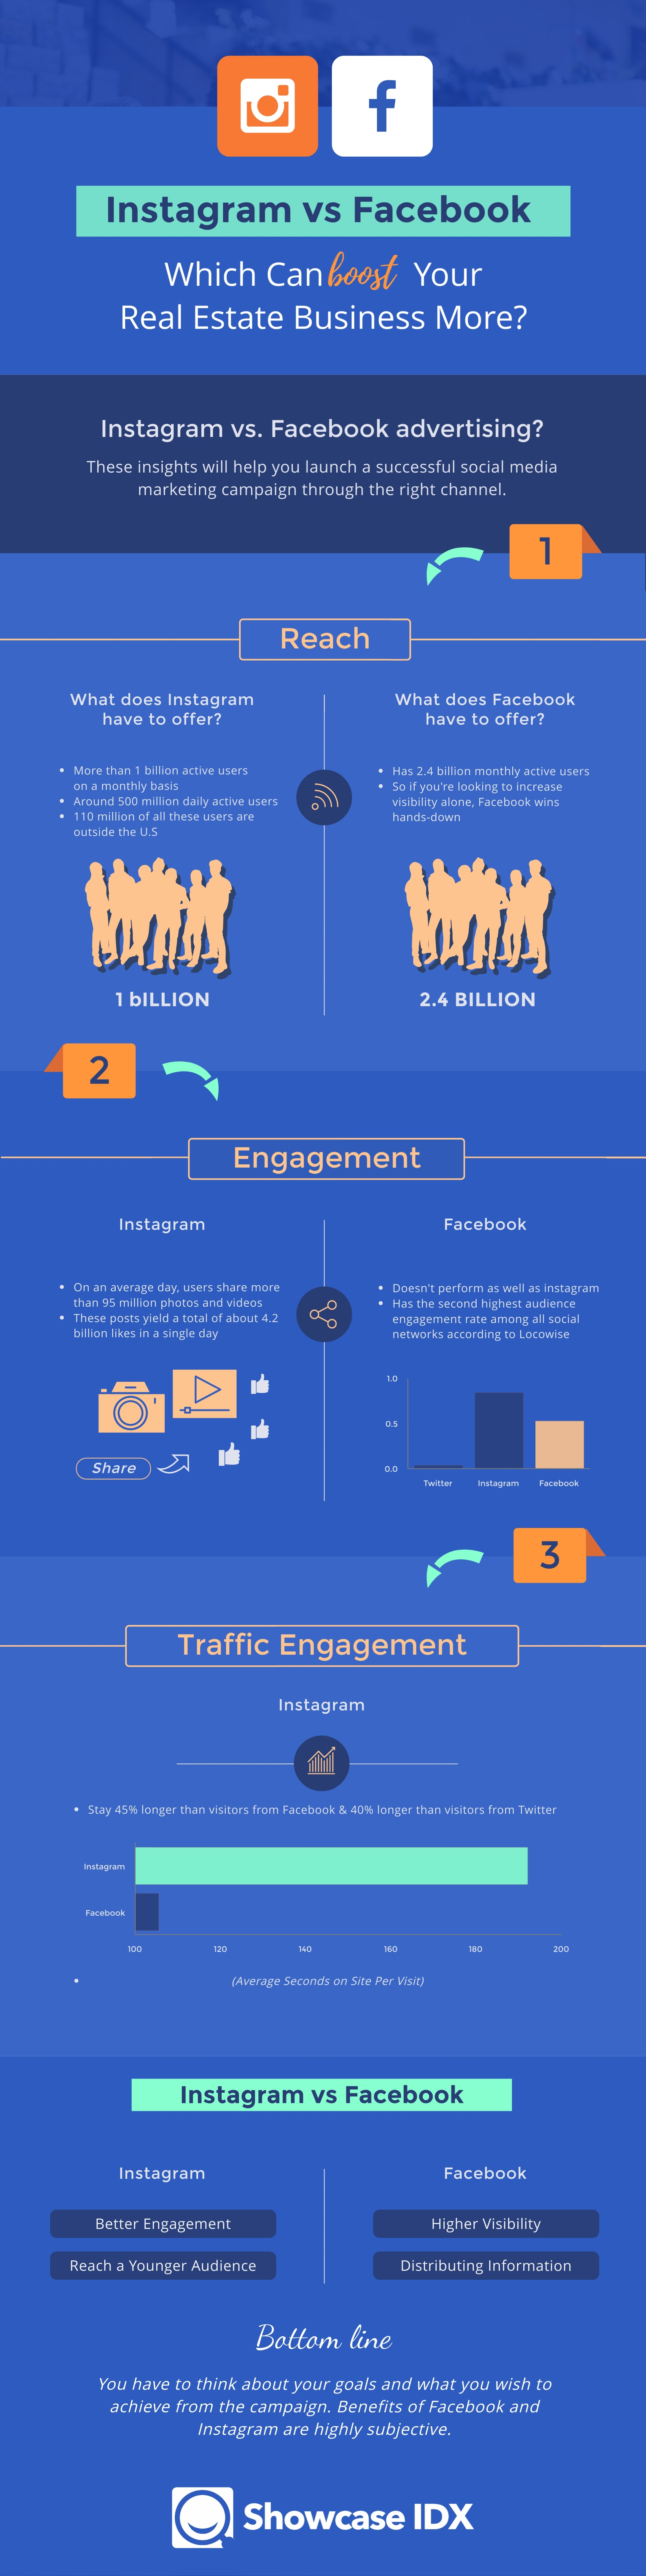 Infographic-Facebook-vs-Instagram-Your-Real-Estate-Business-More